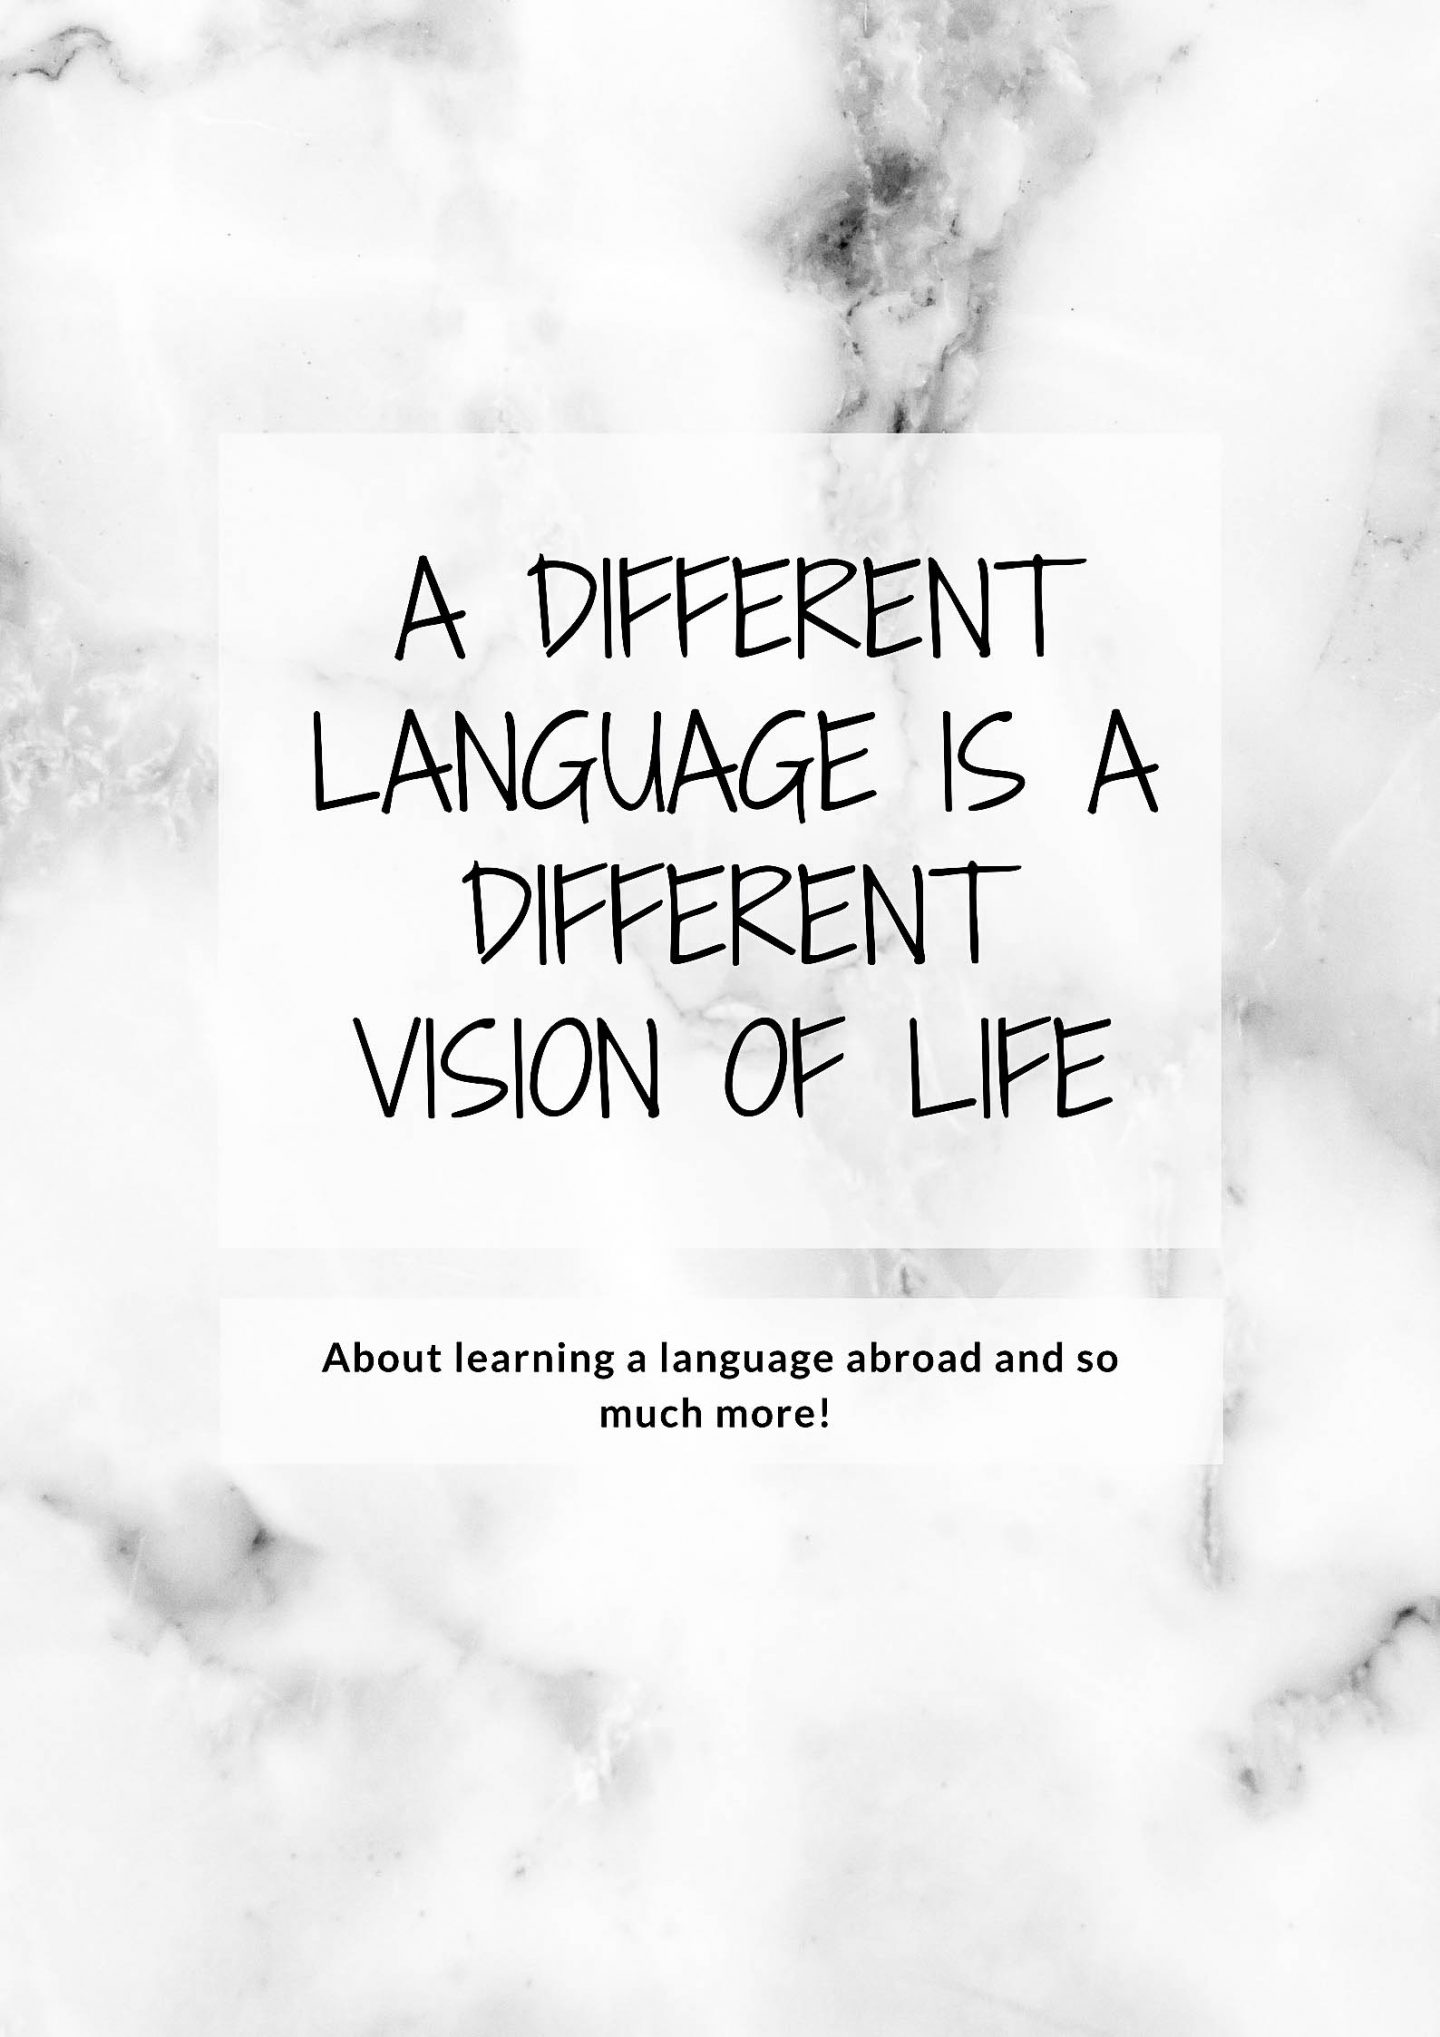 5 REASONS WHY YOU SHOULD LEARN A LANGUAGE ABROAD | AD